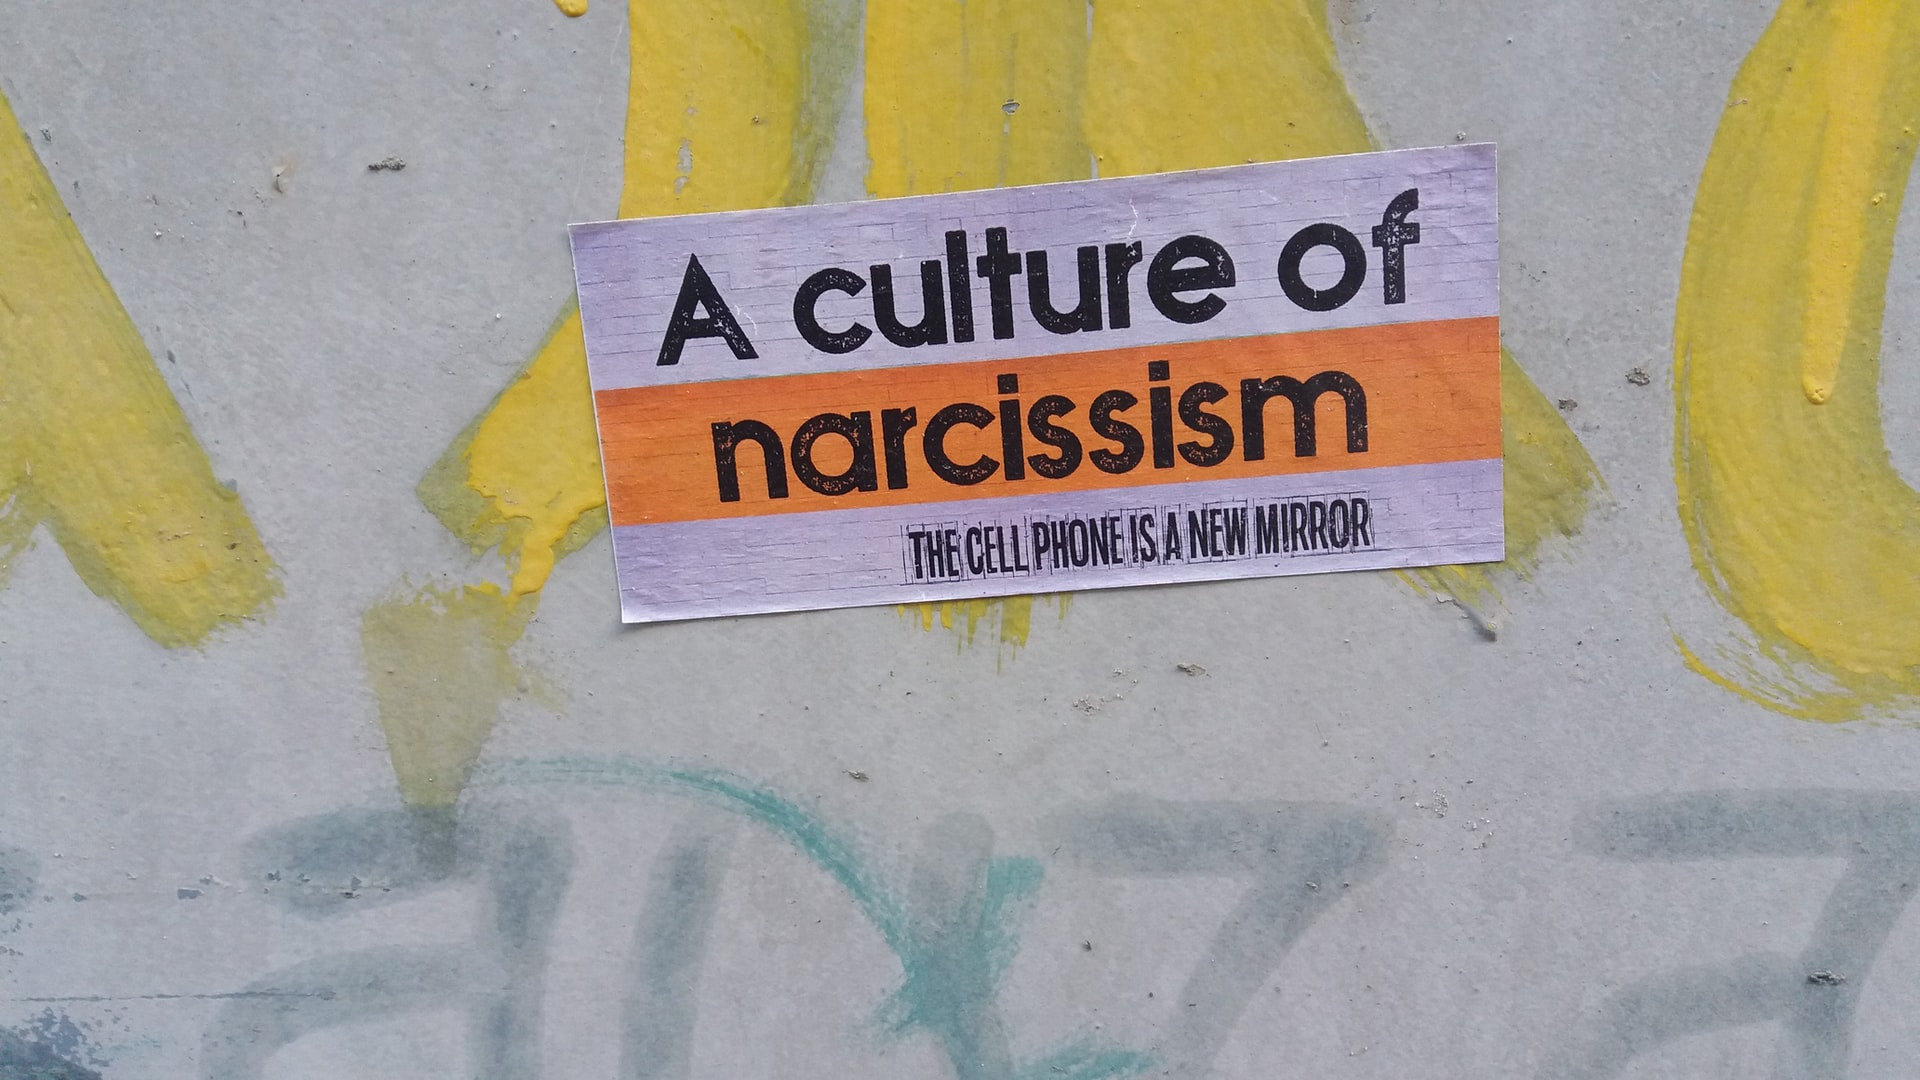 How To Get Rid Of Narcissism?